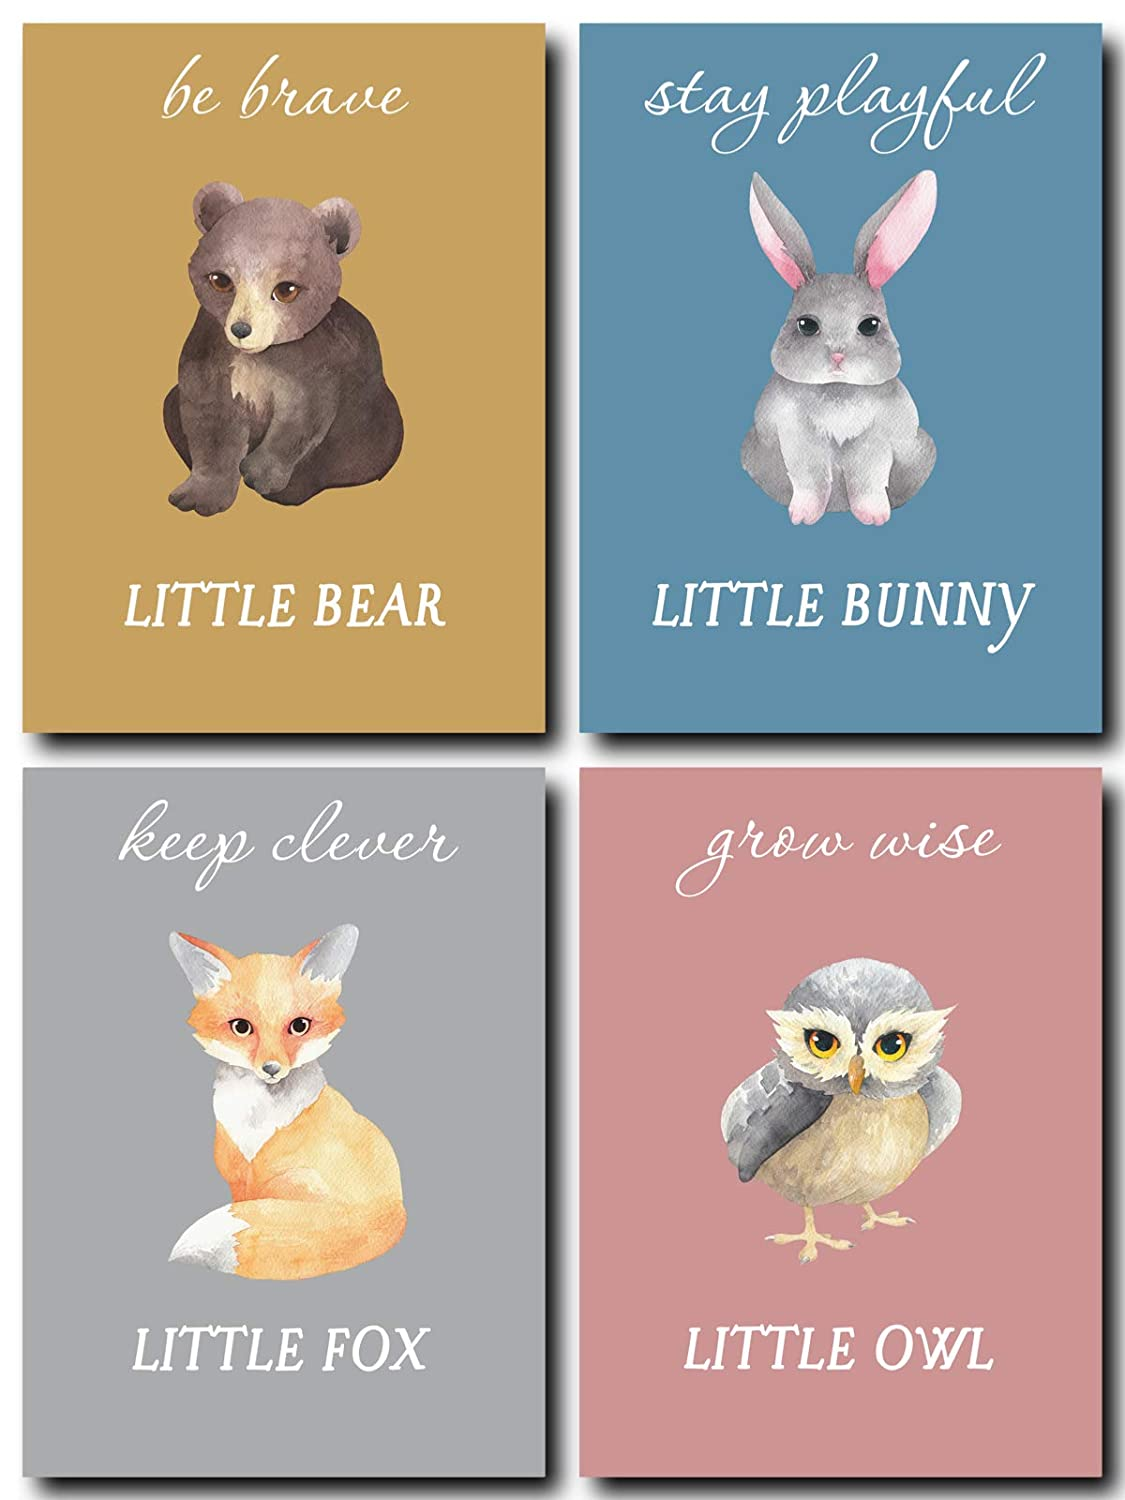 L & O Goods Woodland Animals Inspirational Nursery Décor | Baby Boy & Girl Wall Art Watercolor Prints | Set of 4 Posters for Bedroom Decoration | Cute Kids Posters | 8 x 10's